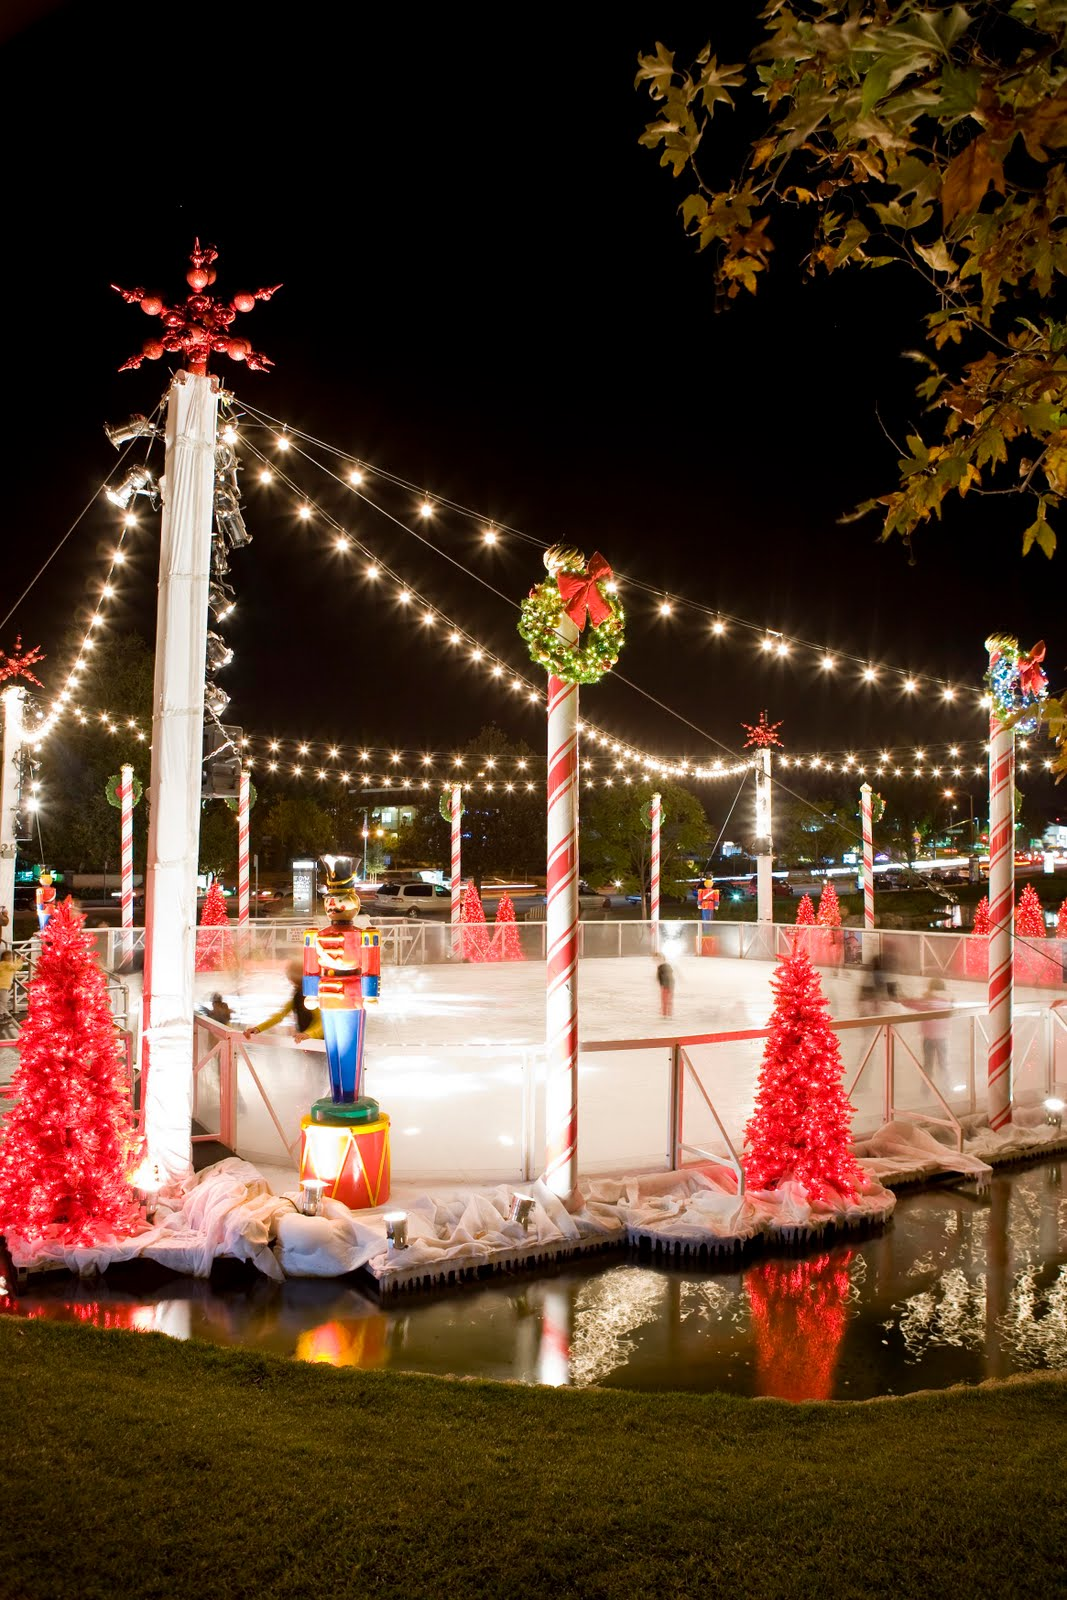 Exceptionnel The Outdoor Ice Rink Offers Skating Opportunities Through Jan 8.